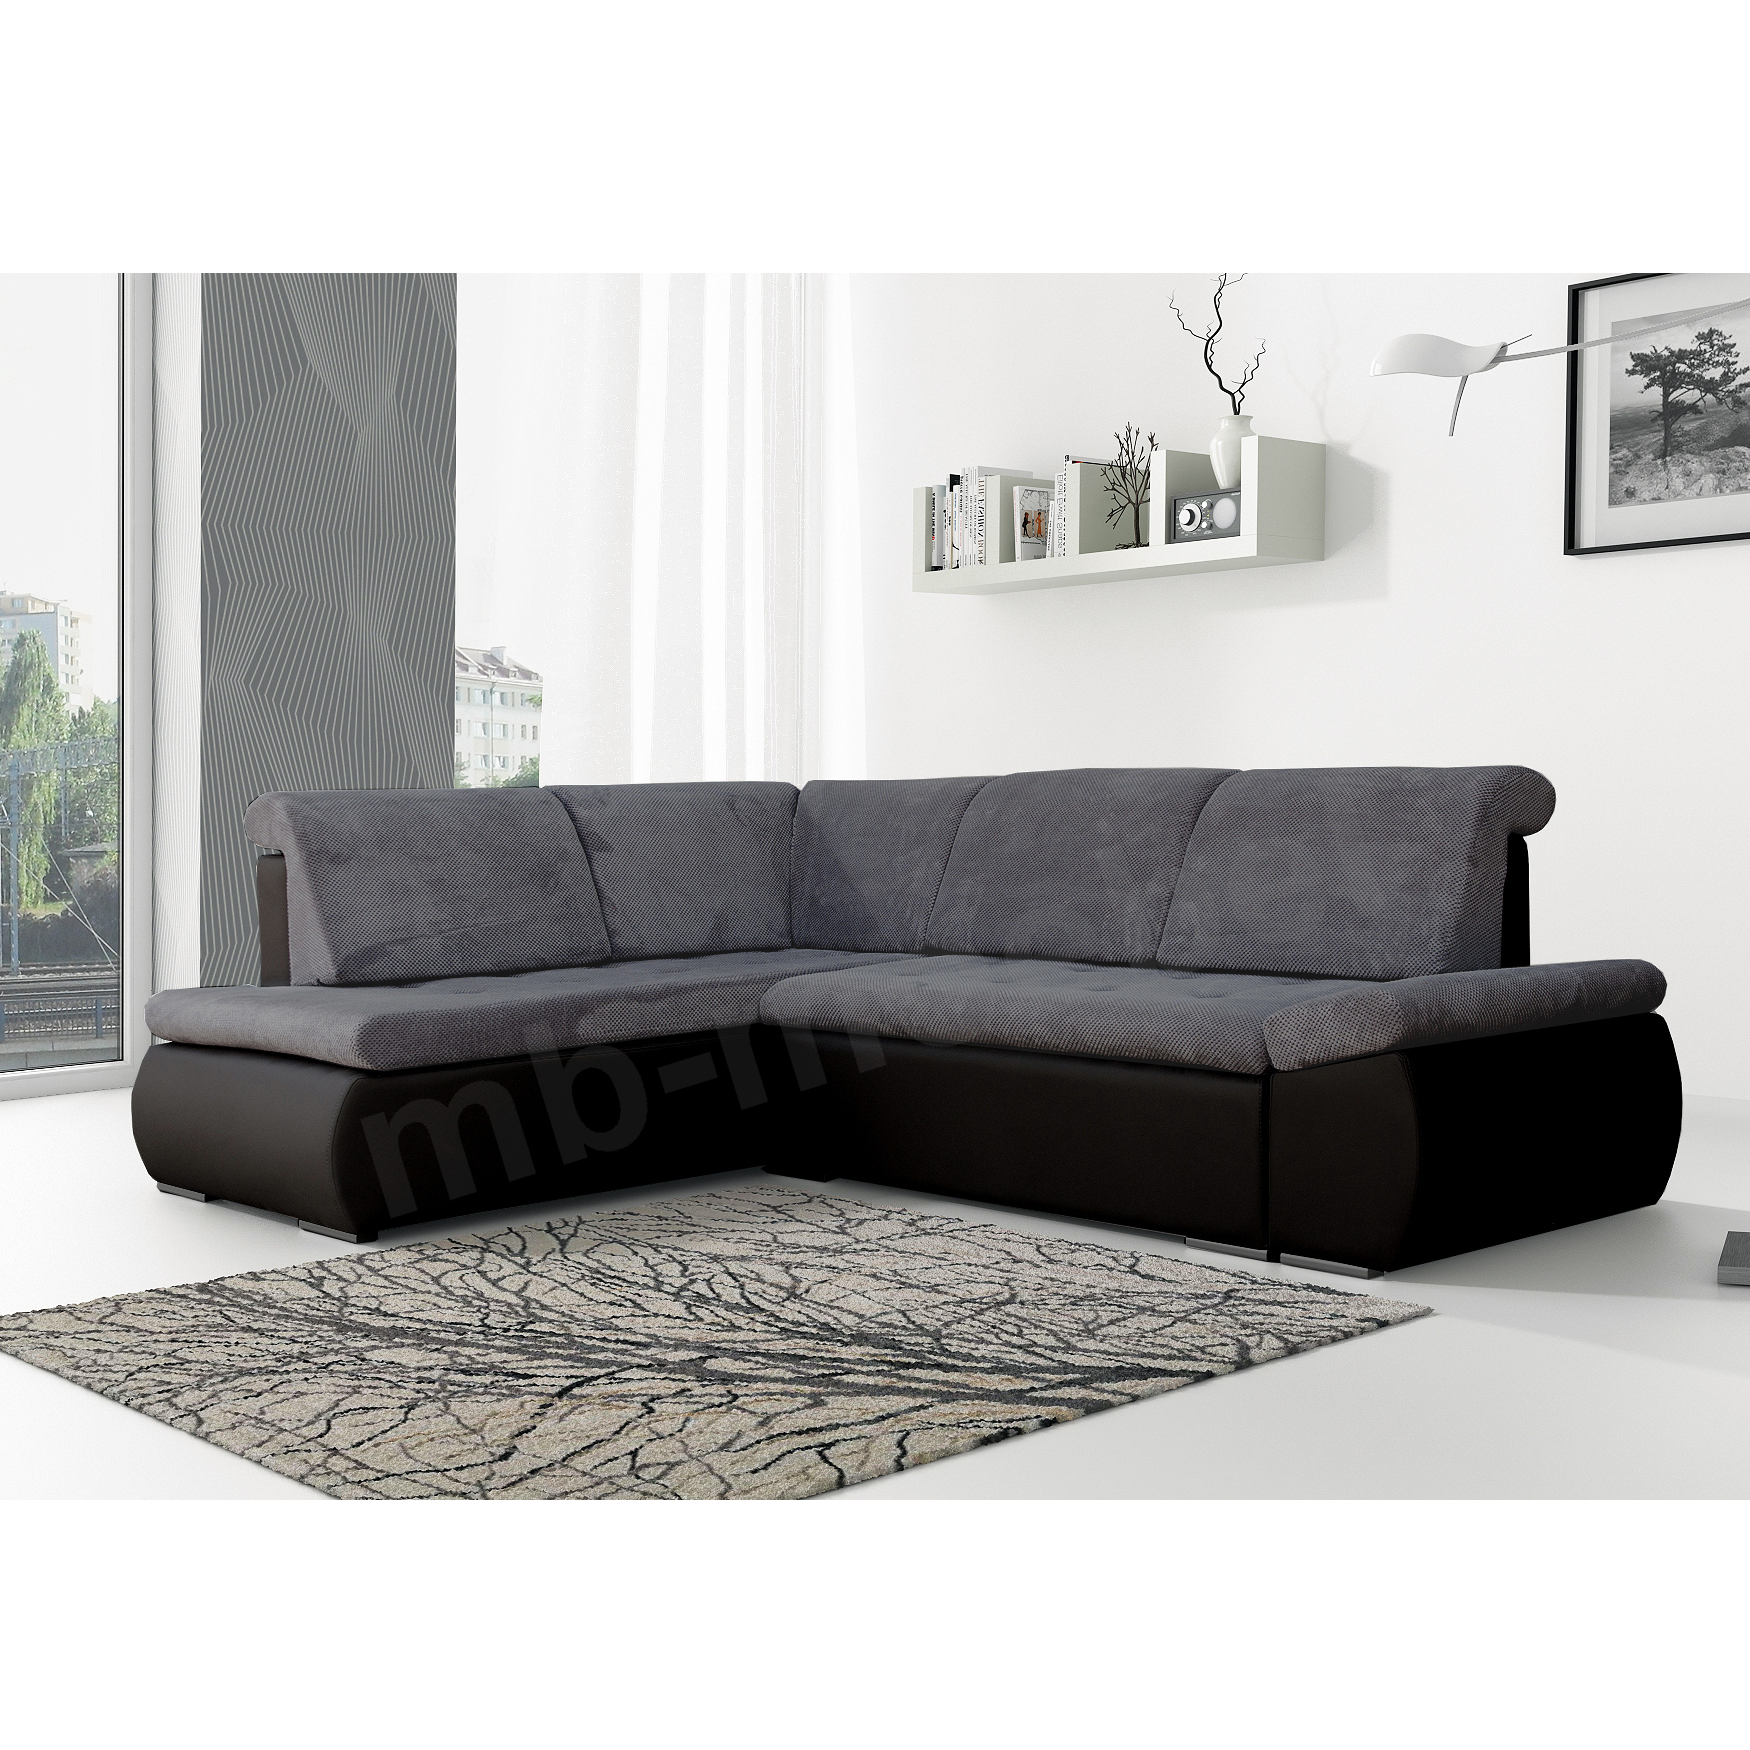 ecksofa bonita dunkelgrau schwarz m bel muller braun. Black Bedroom Furniture Sets. Home Design Ideas